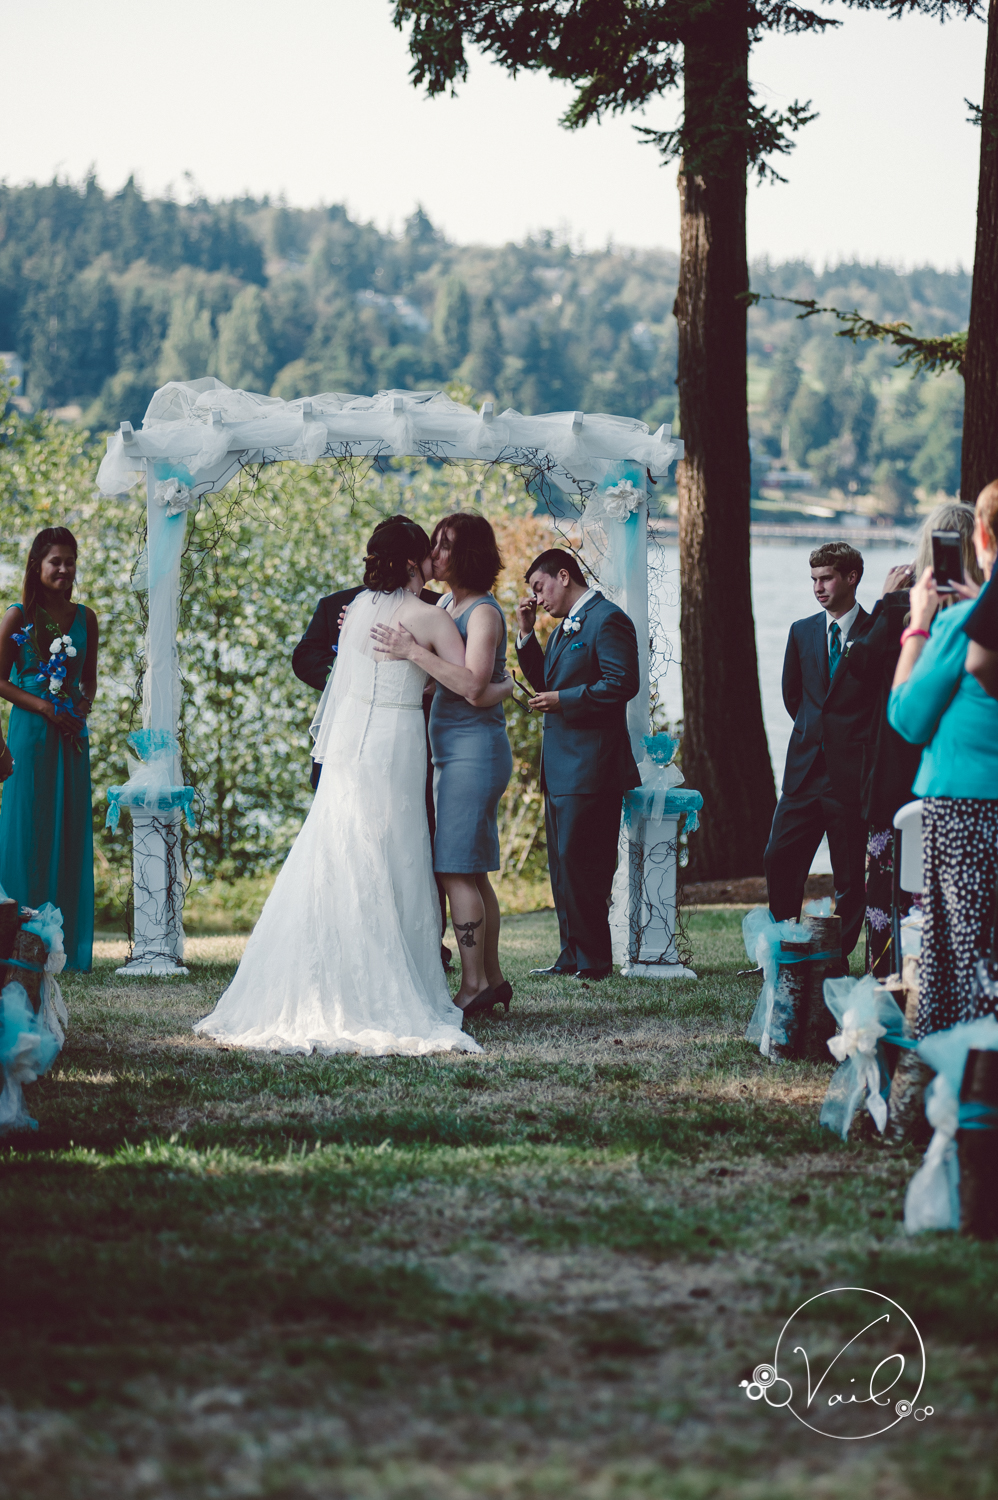 Freeland Hall Whidbey Island wedding-37.jpg